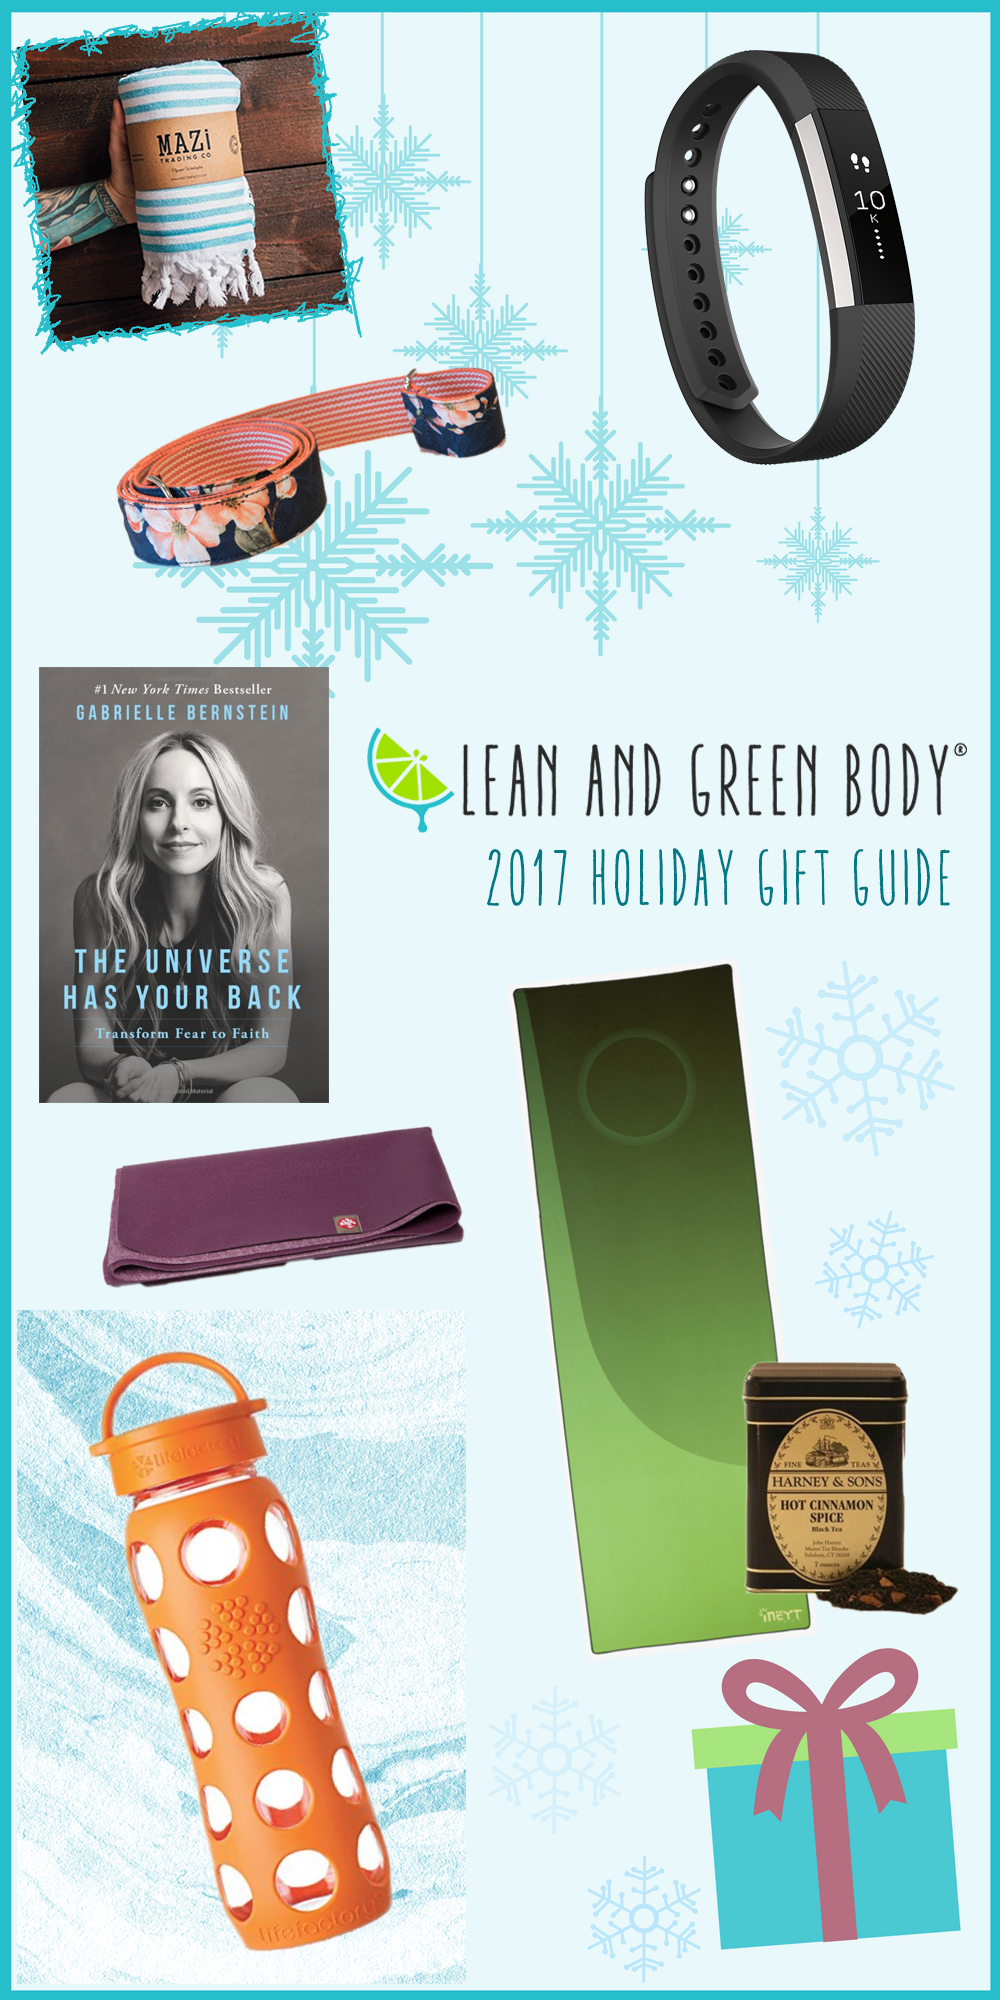 Lean and Green Body Holiday Gift Guide